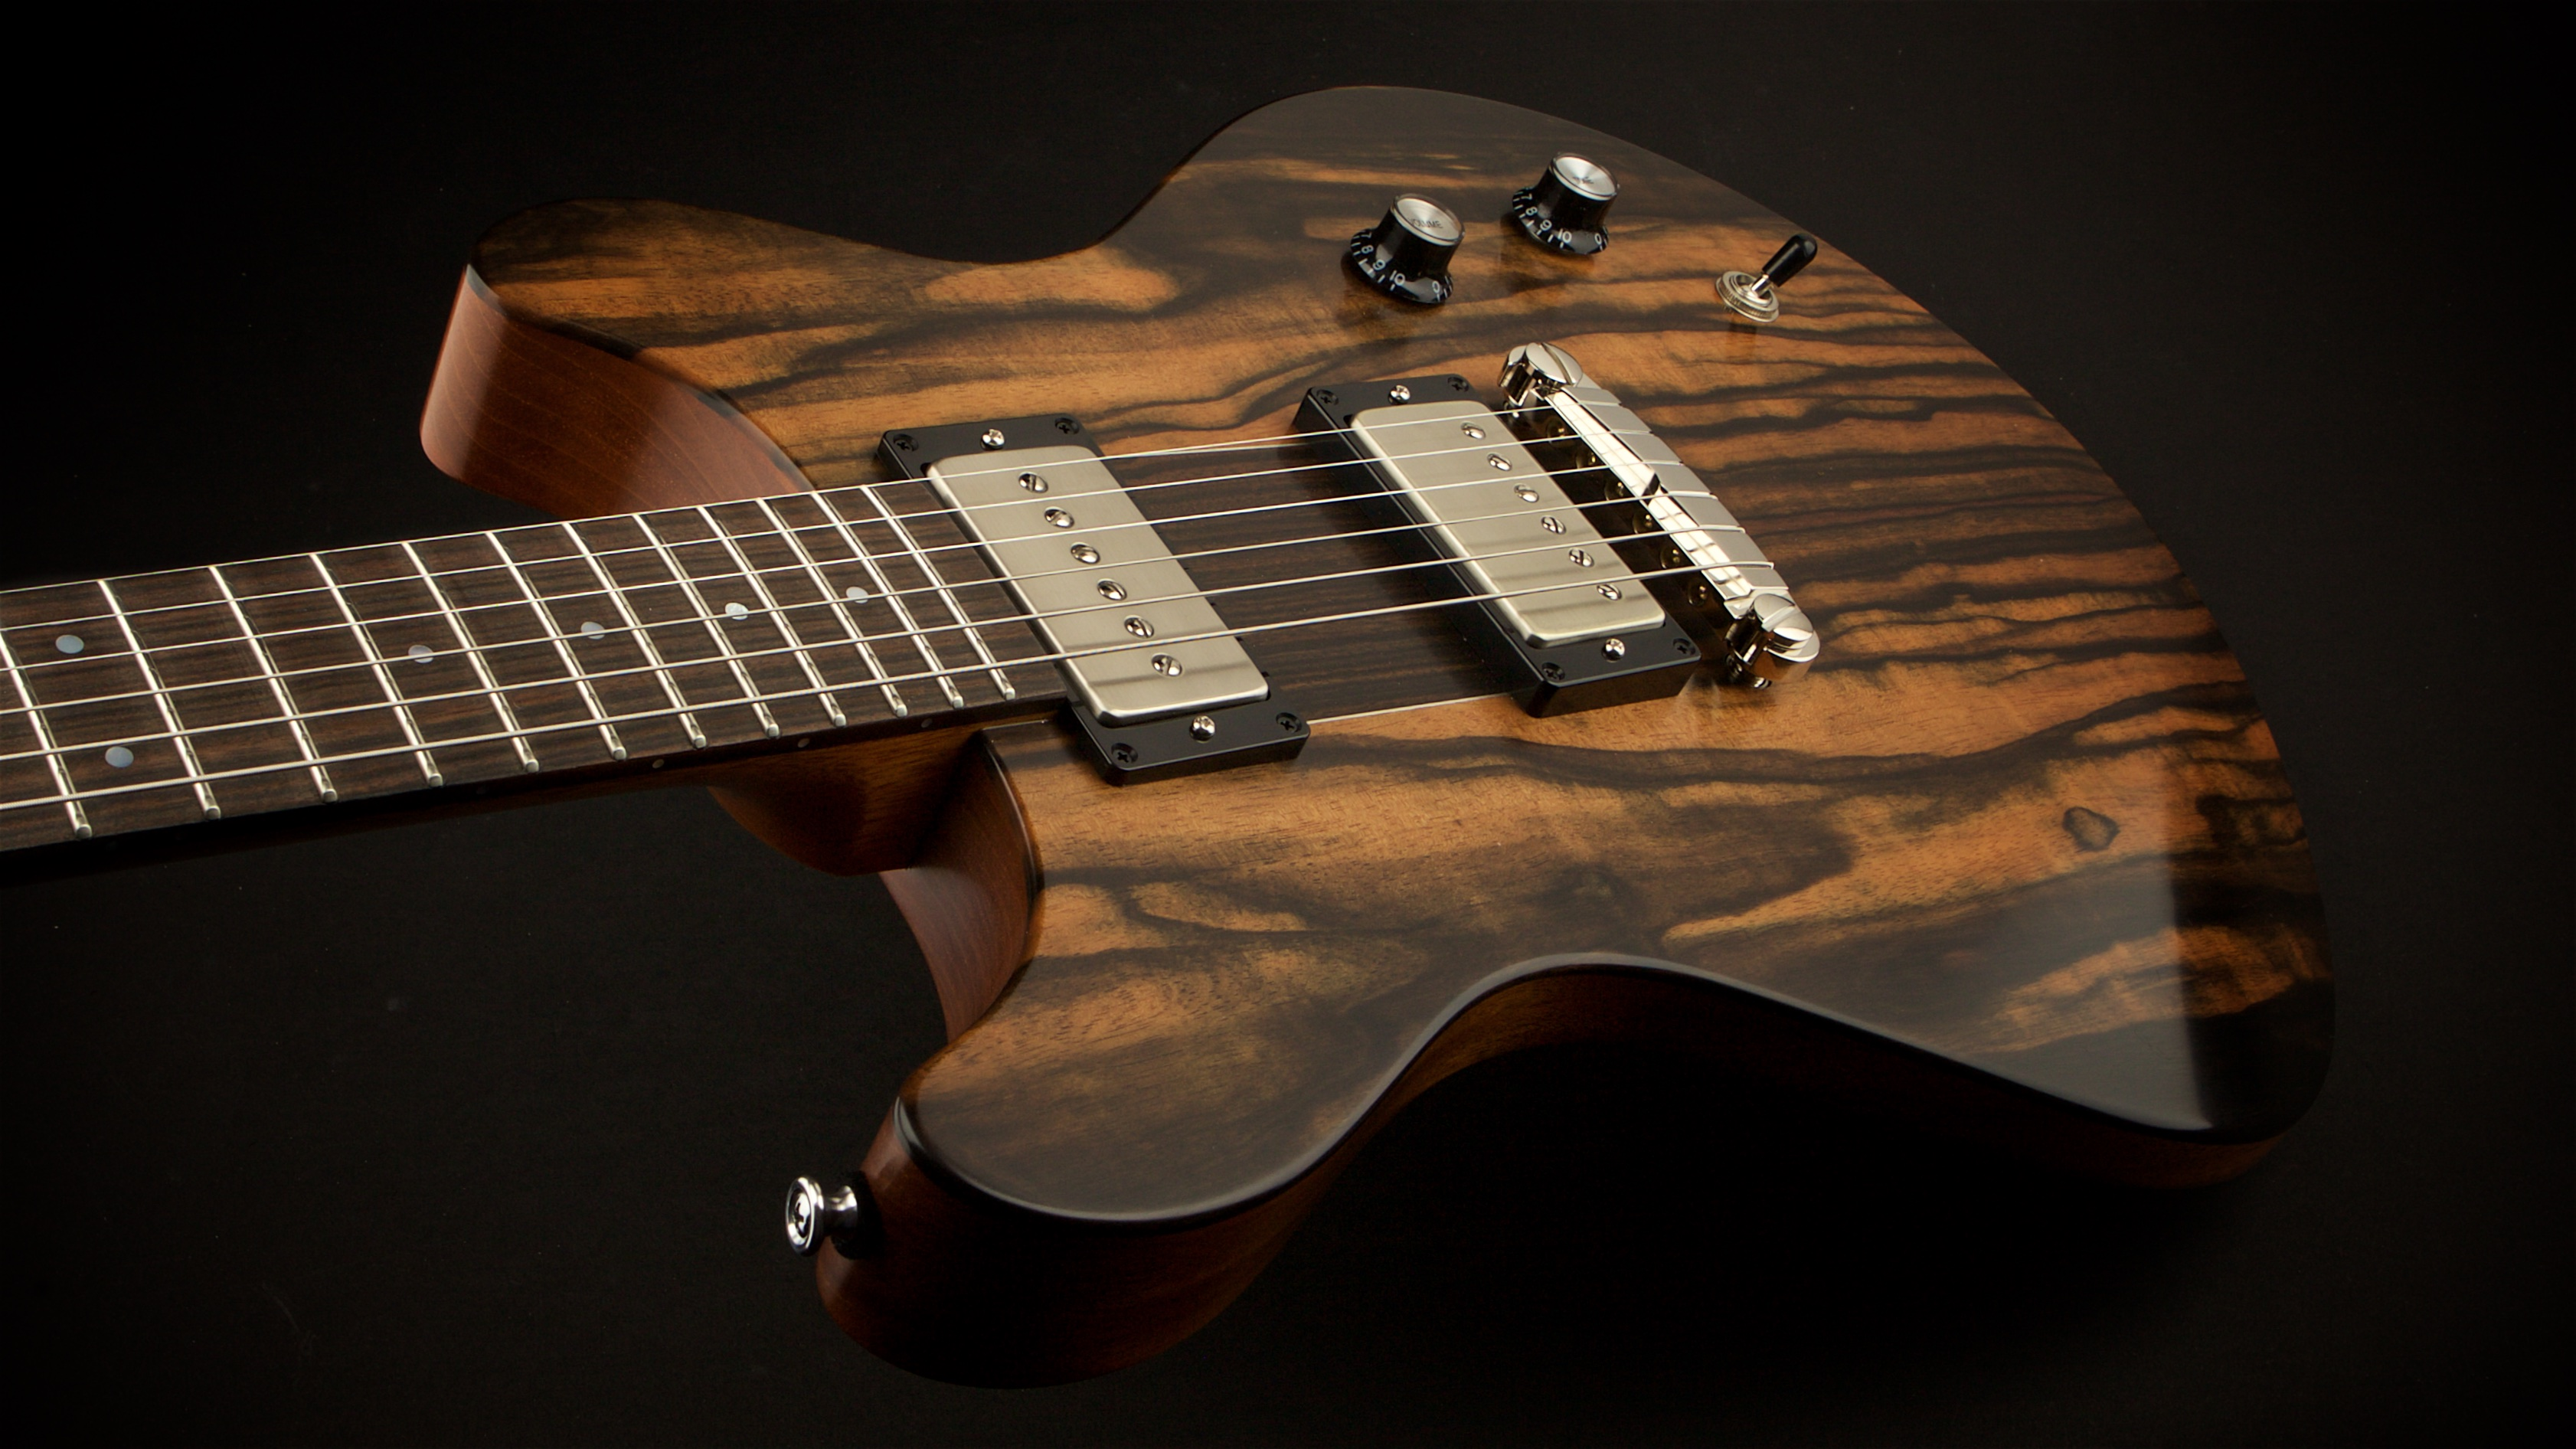 http---worldguitars.co.uk-macon-contoured-macassar-ebony-182174